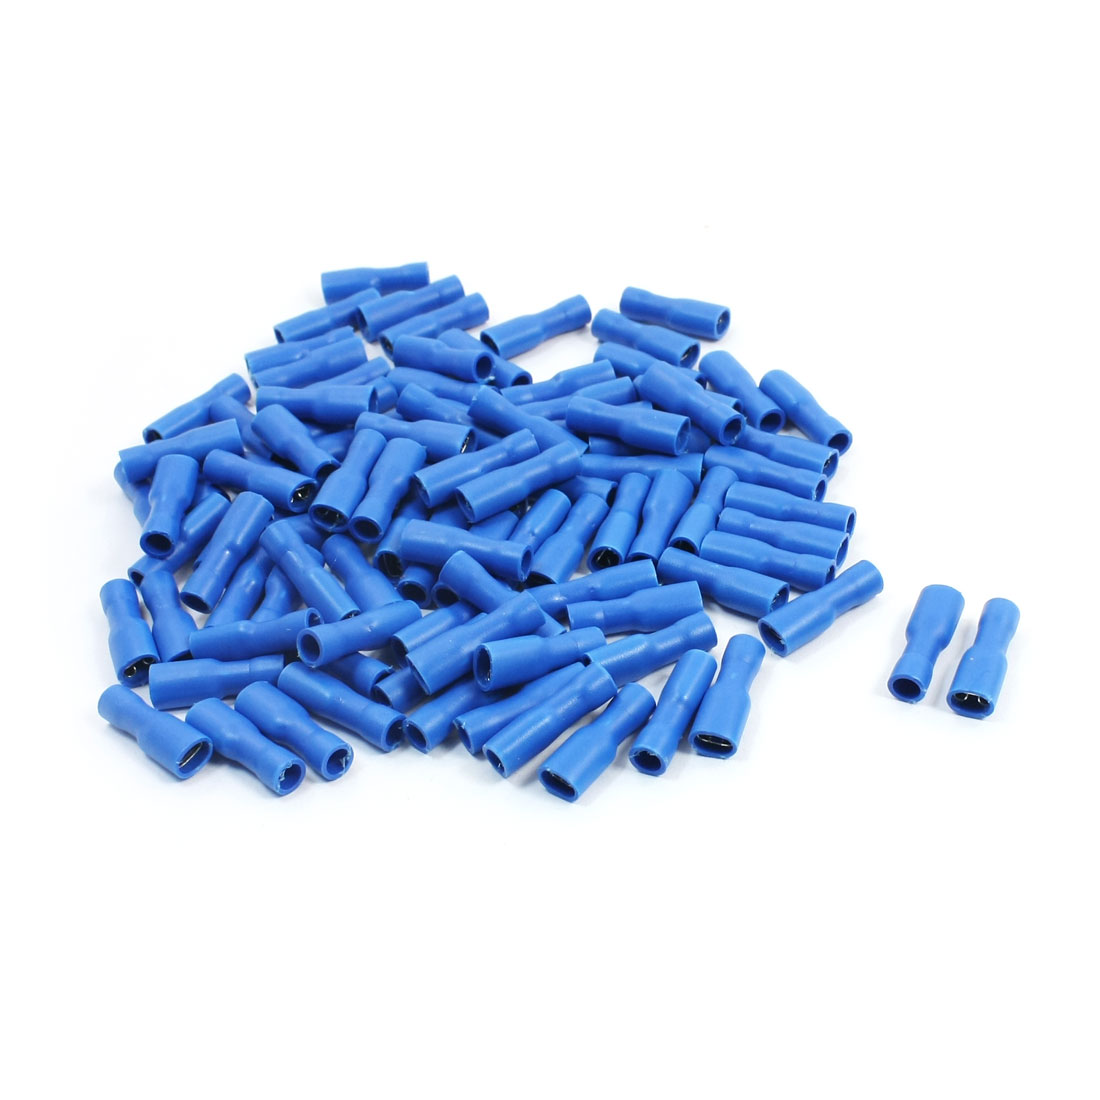 100Pcs FDFD2-187 16-14AWG 0.8 x 4.75mm Blue Plastic Shell Female Spade Connector Insulated Crimp Terminal